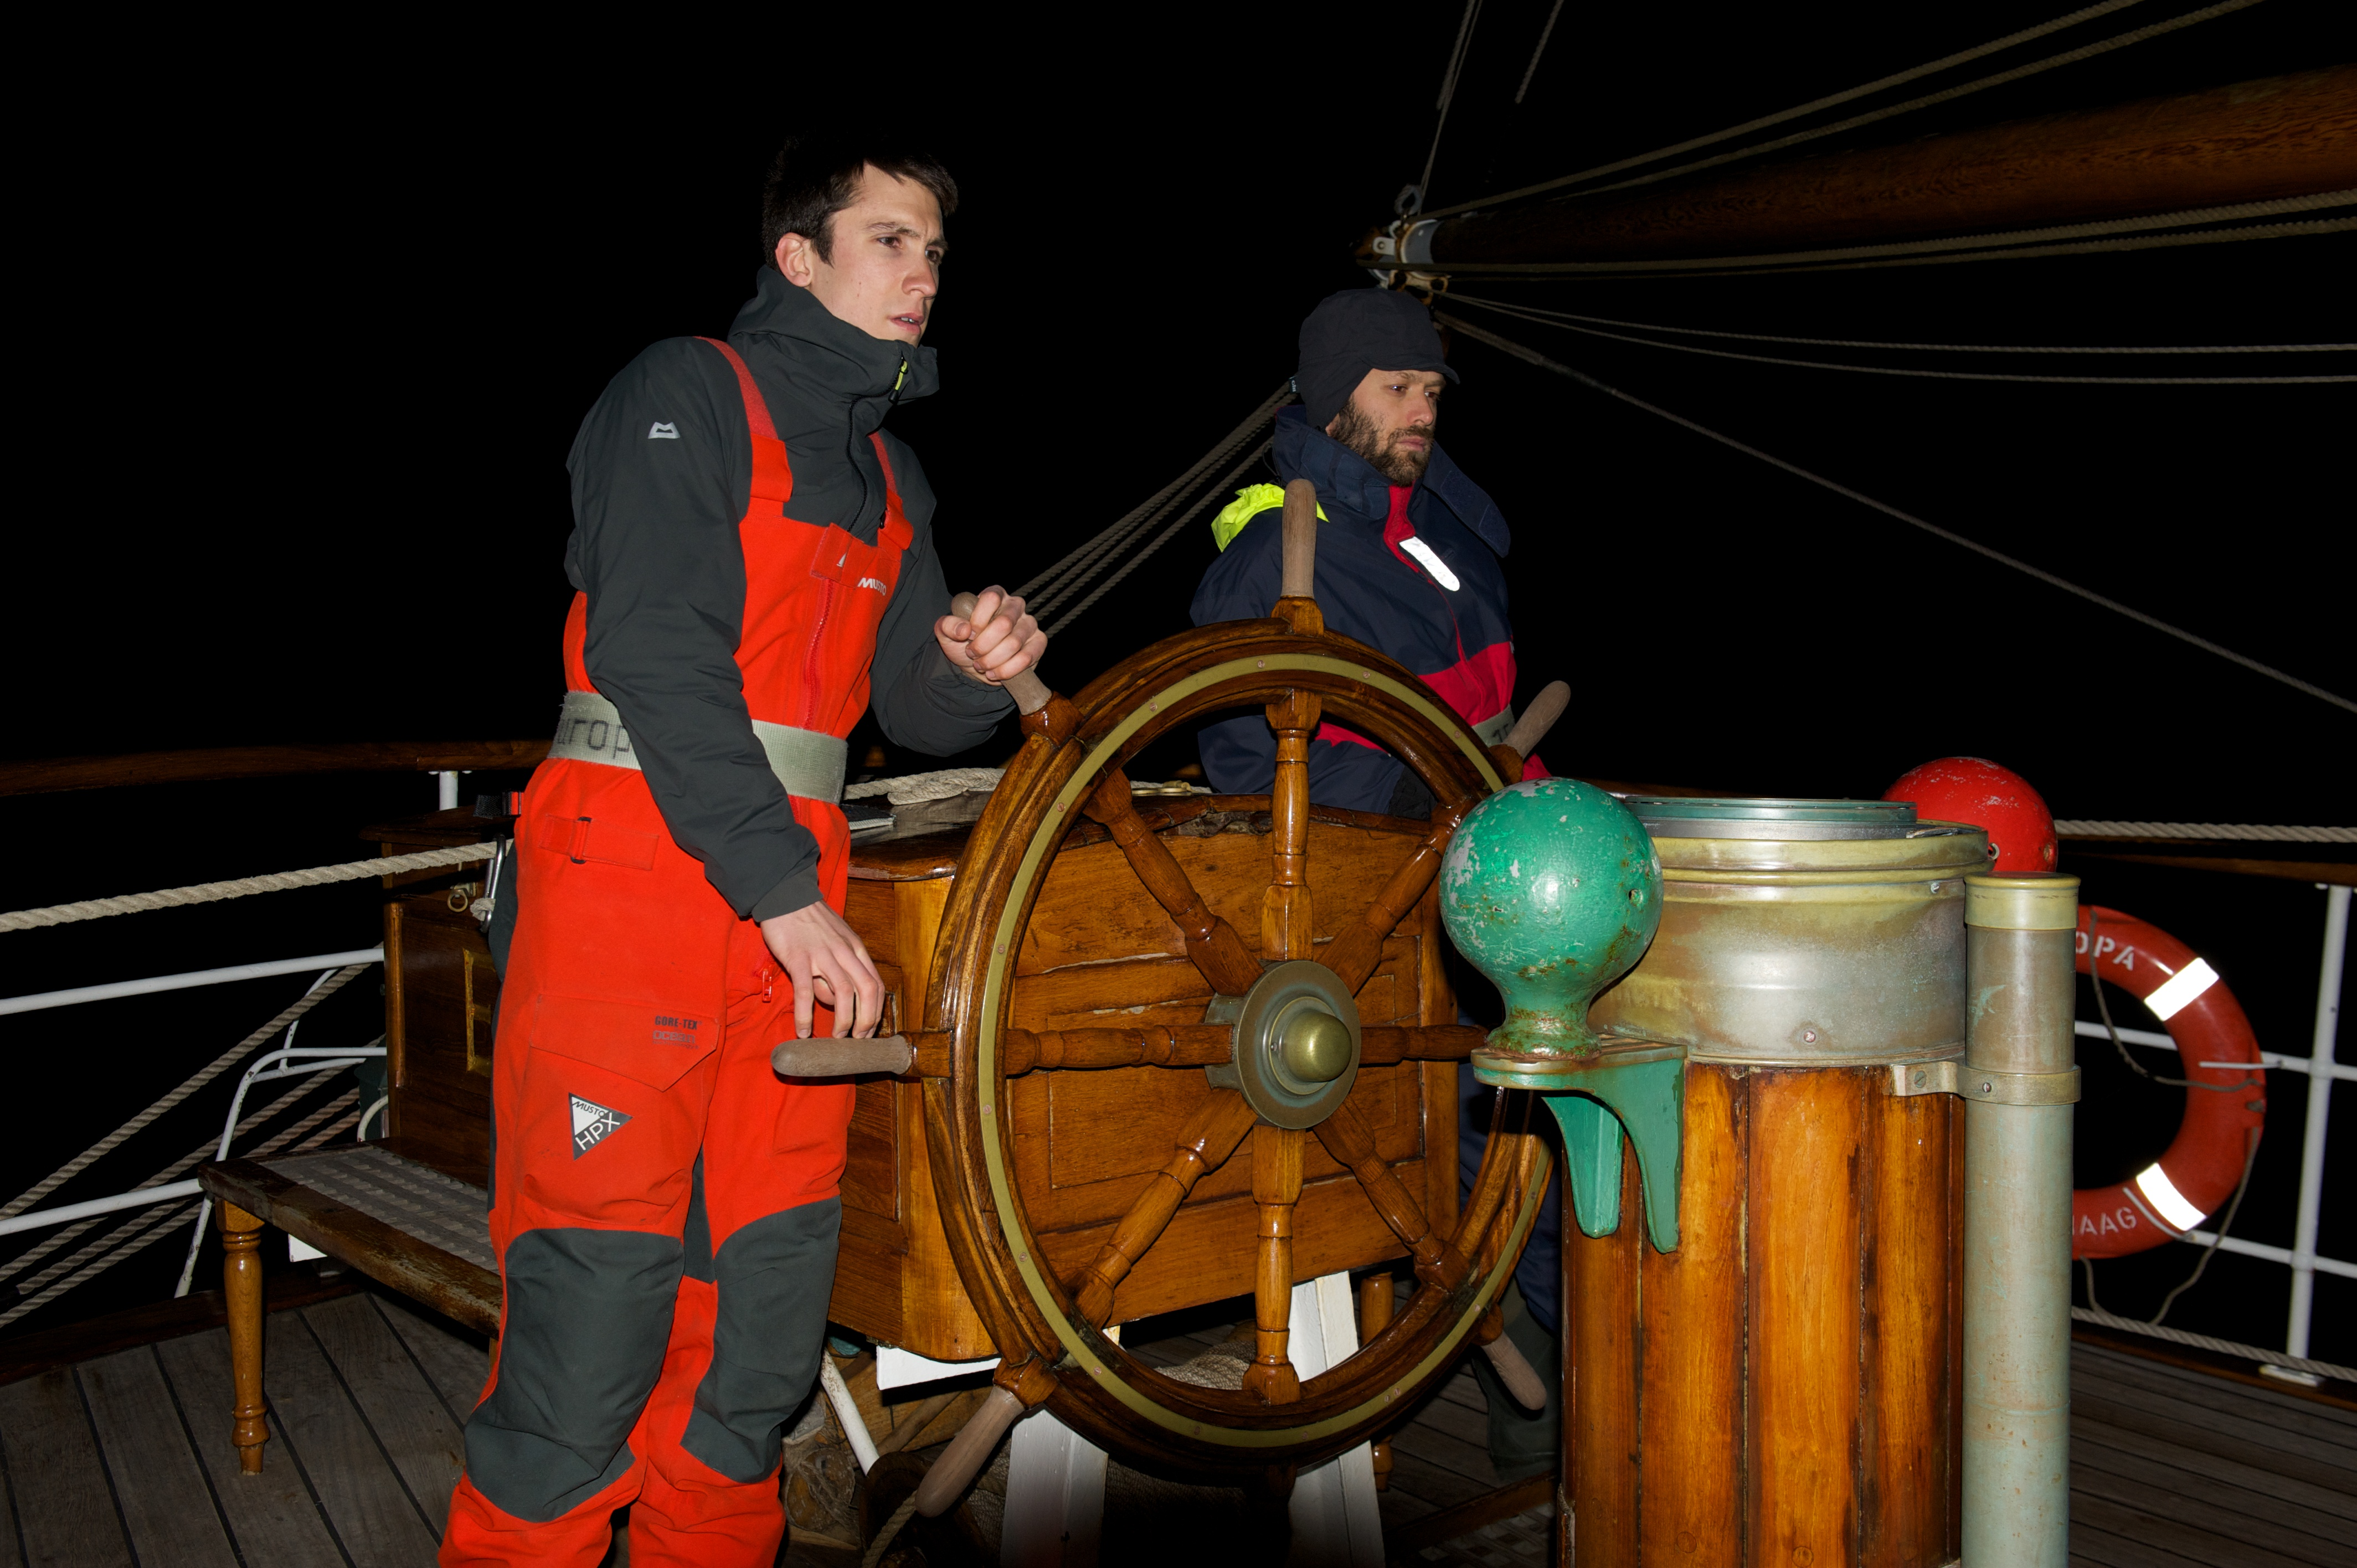 Ant and Felix at the helm